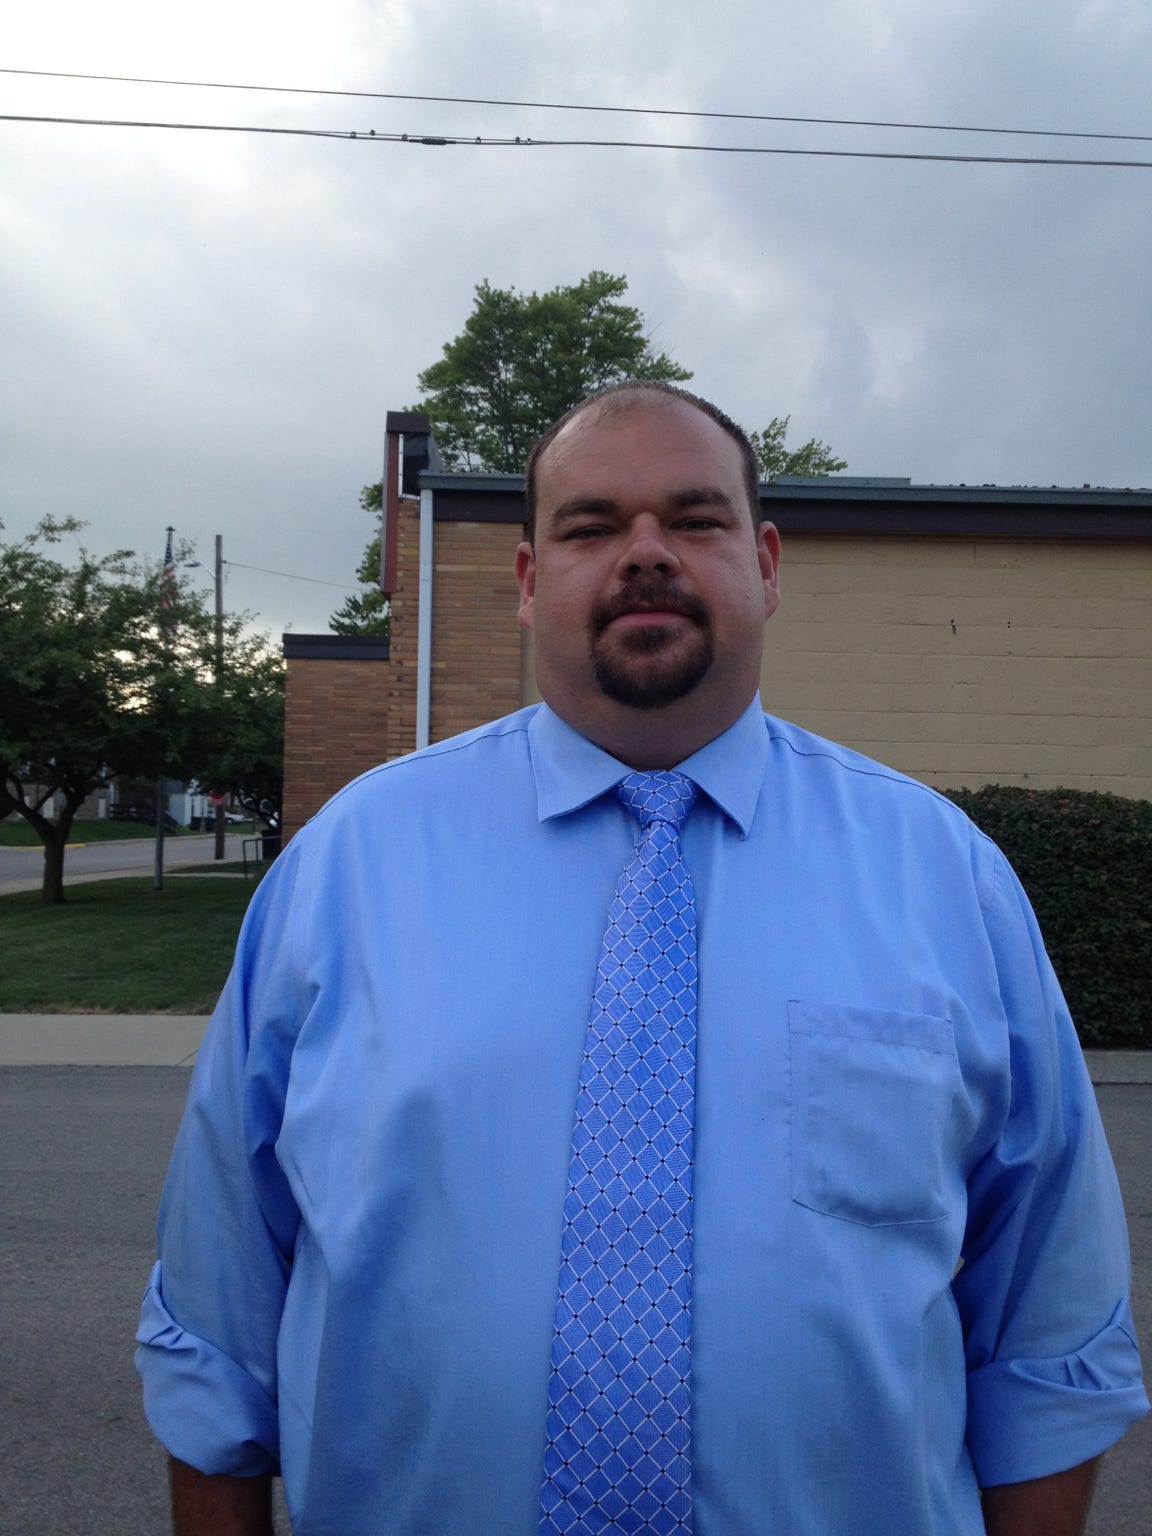 Dave Faber, Sandusky city manager, lives within the confines of the Sanilac County seat.